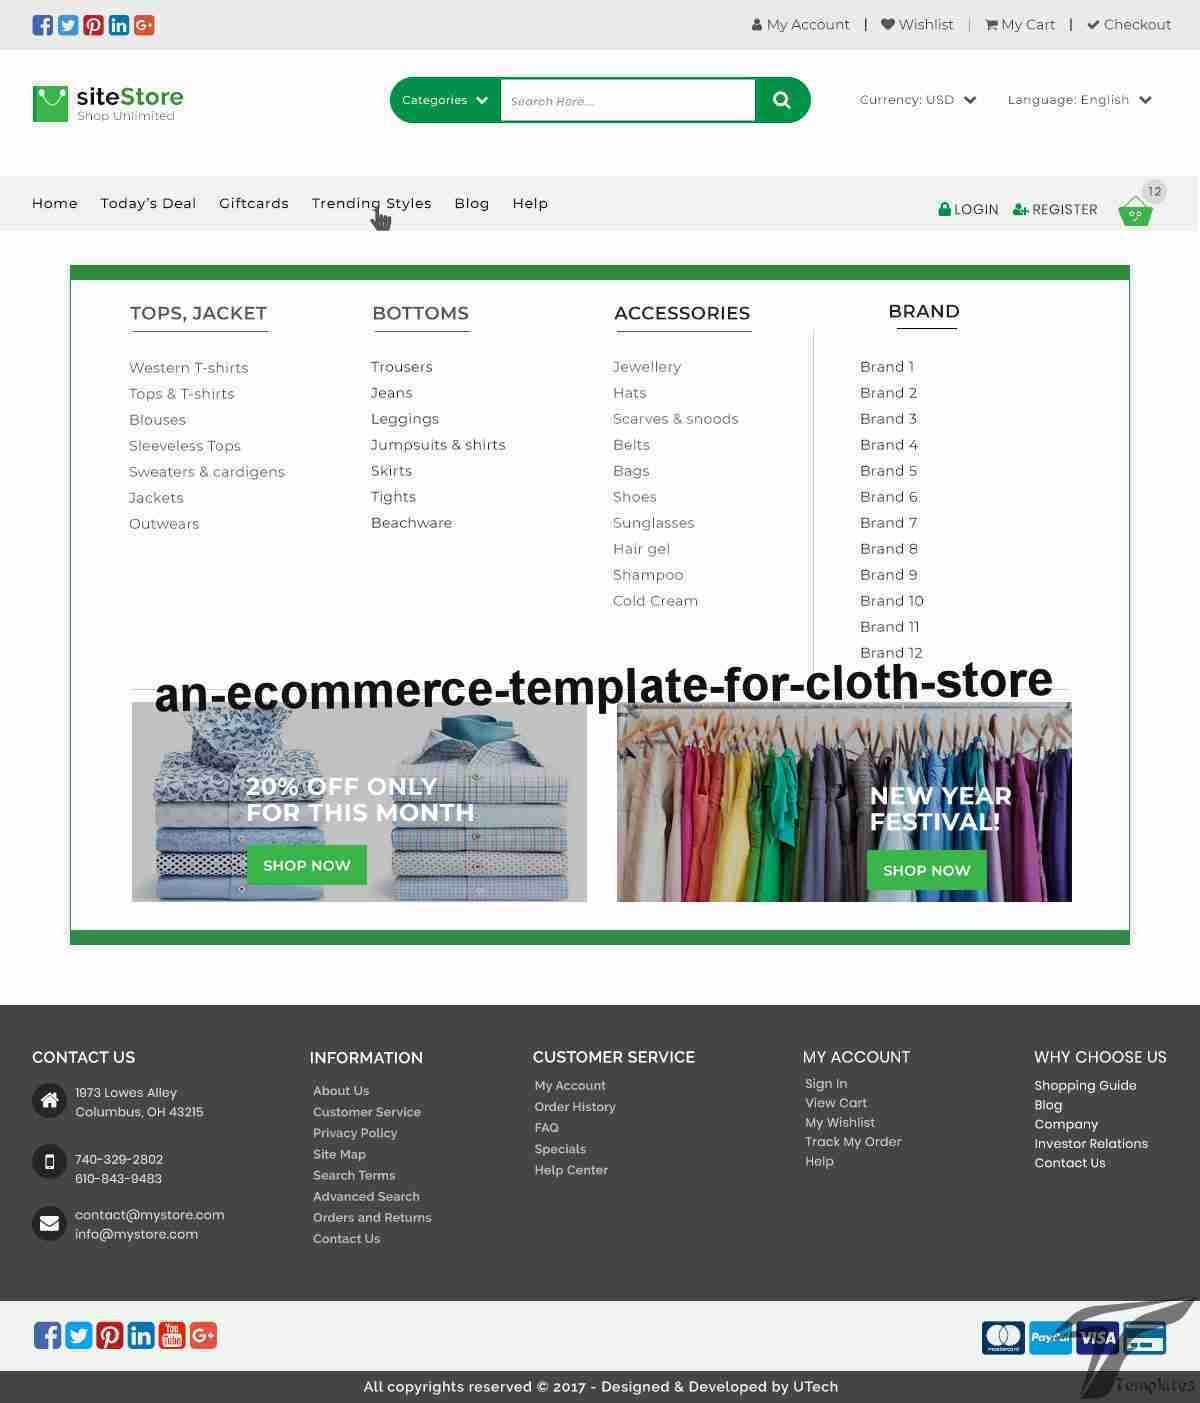 https://images.besthemes.com/images/h1_an-ecommerce-template-for-cloth-store27-_-244967348/preview/27_dropdown-women.jpg